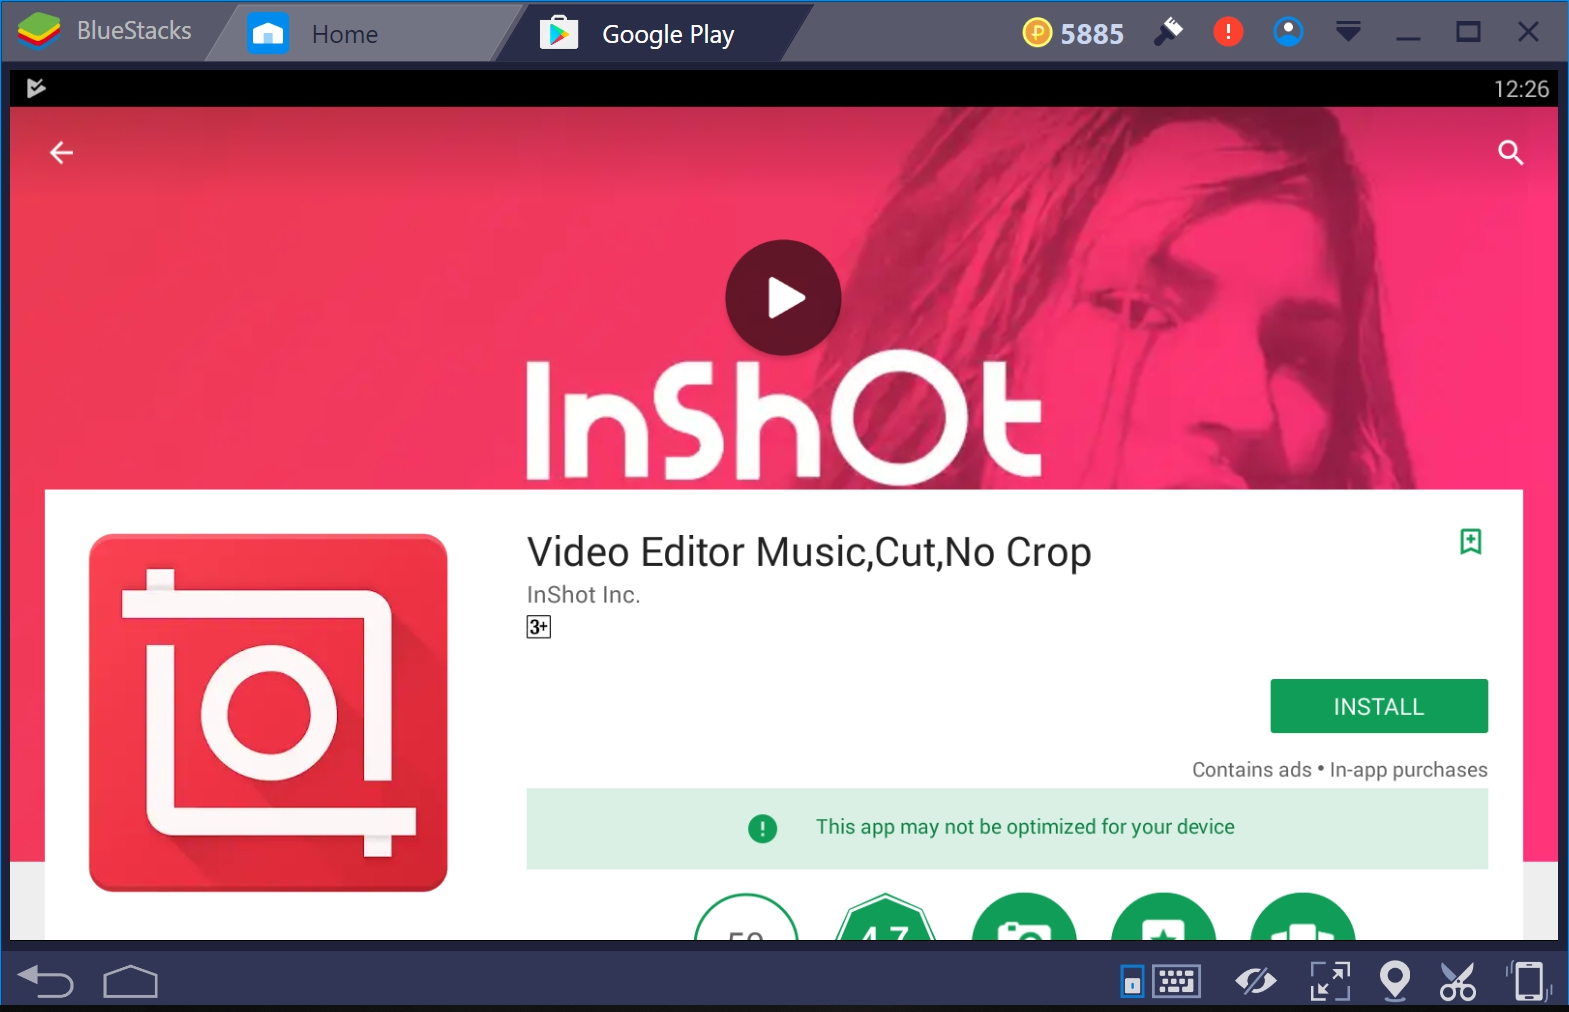 InShot Photo & Video Editor for PC Windows 10/8/7/XP and Mac.